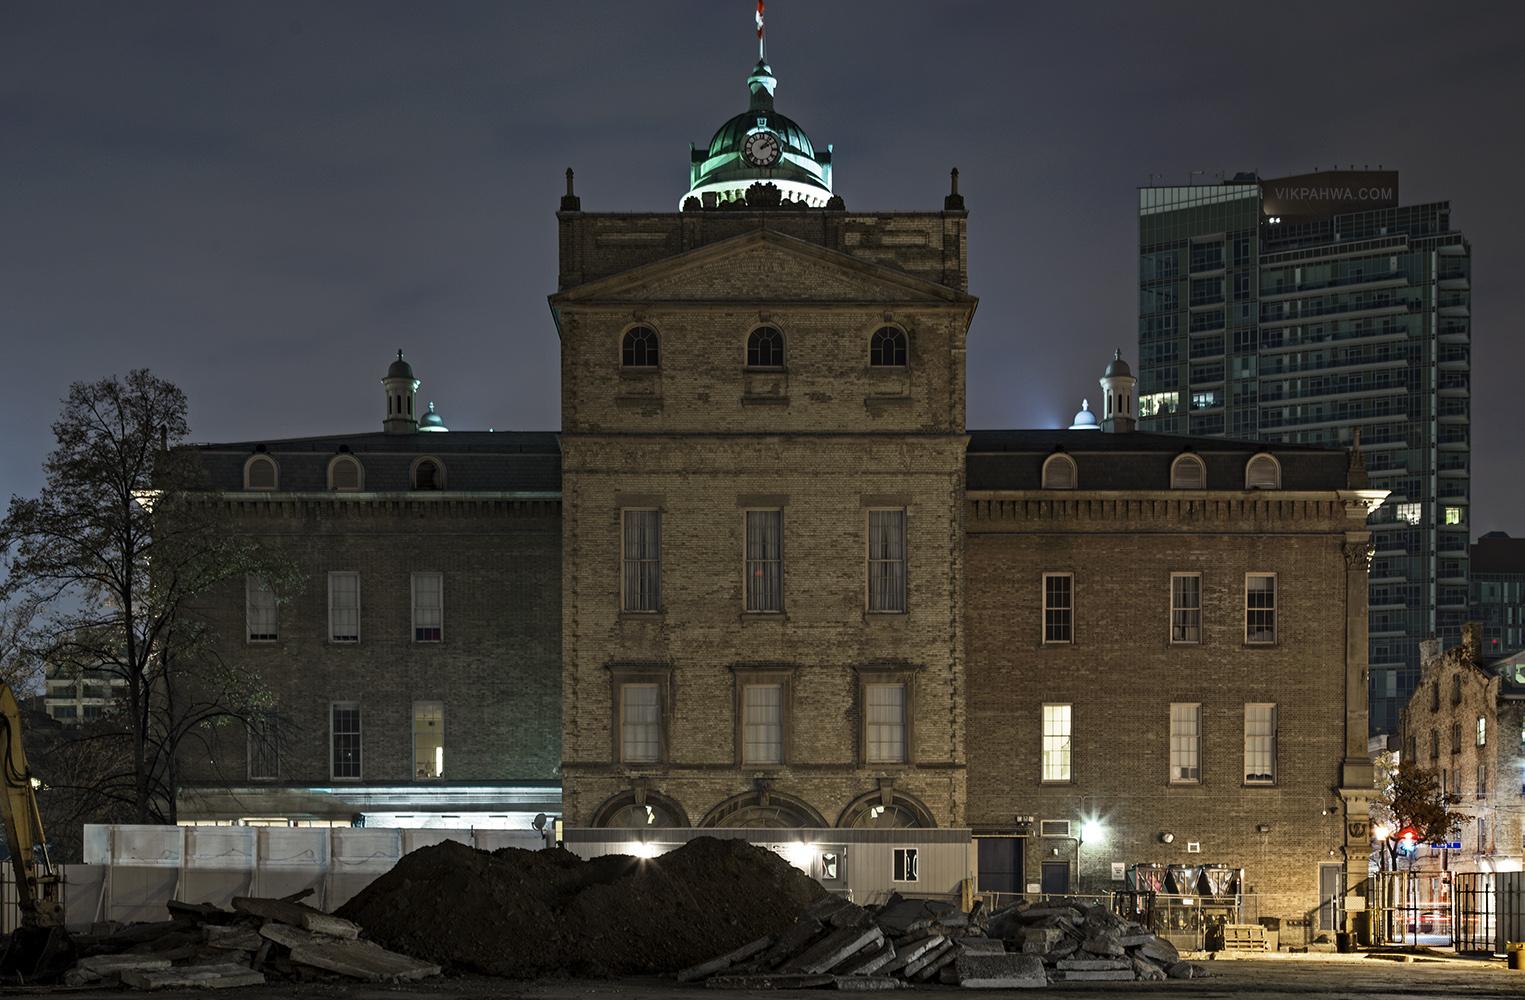 20161115. The temporary rear view of Toronto's St. Lawrence Hall